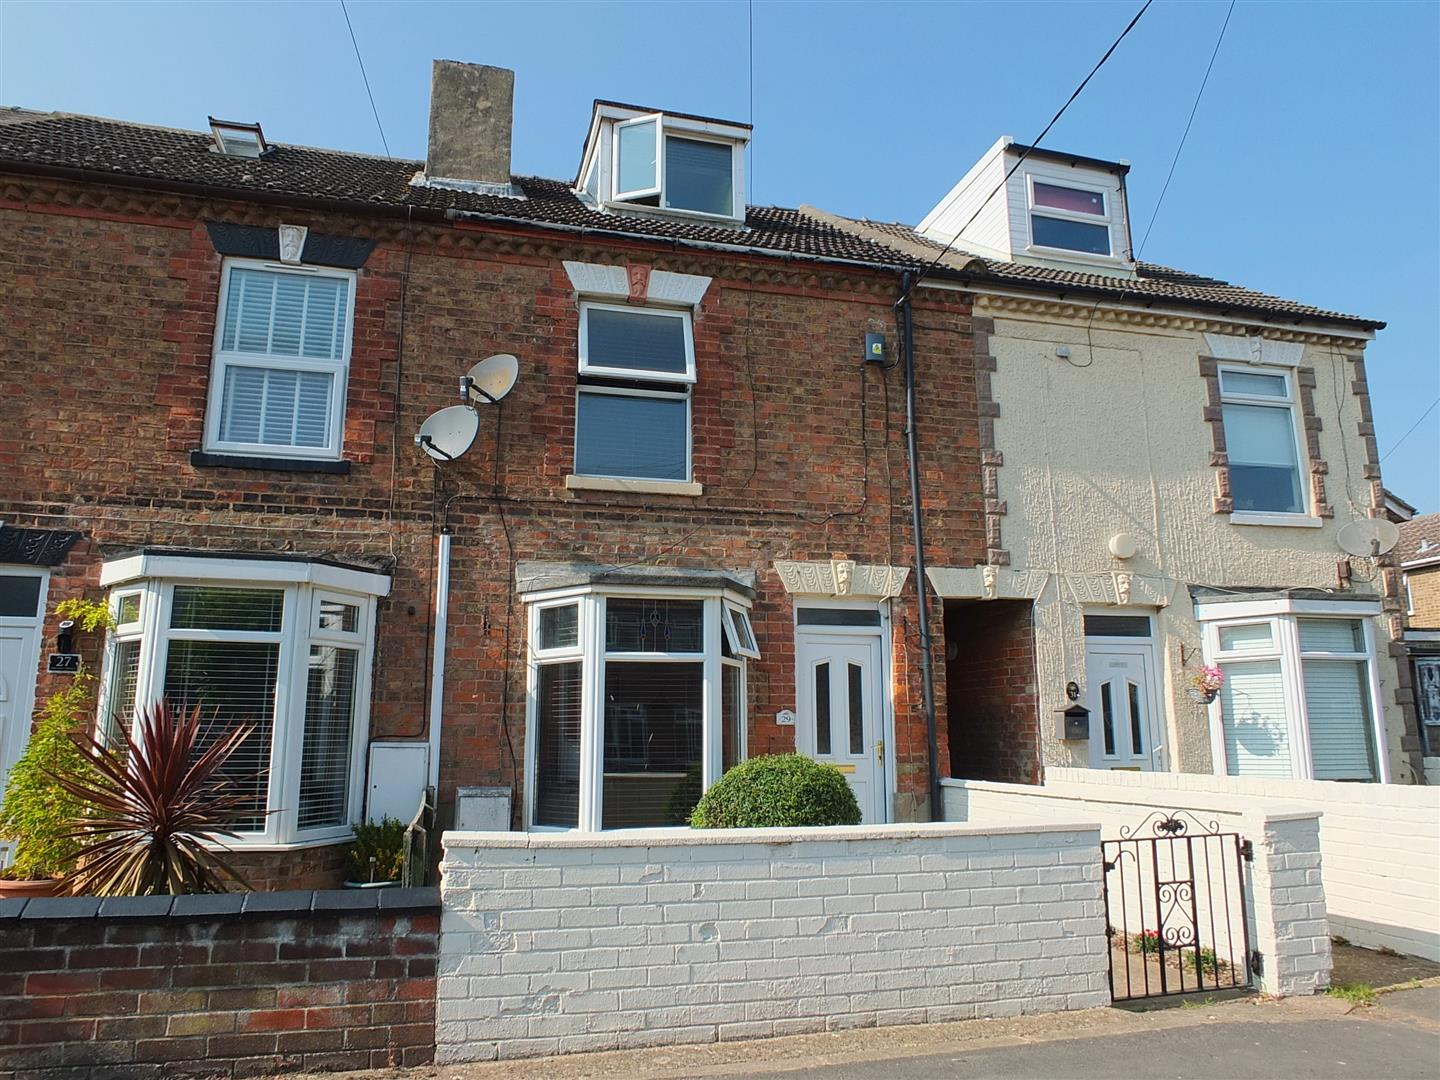 3 bed terraced house for sale in Sutton Bridge Spalding, PE12 9SX, PE12